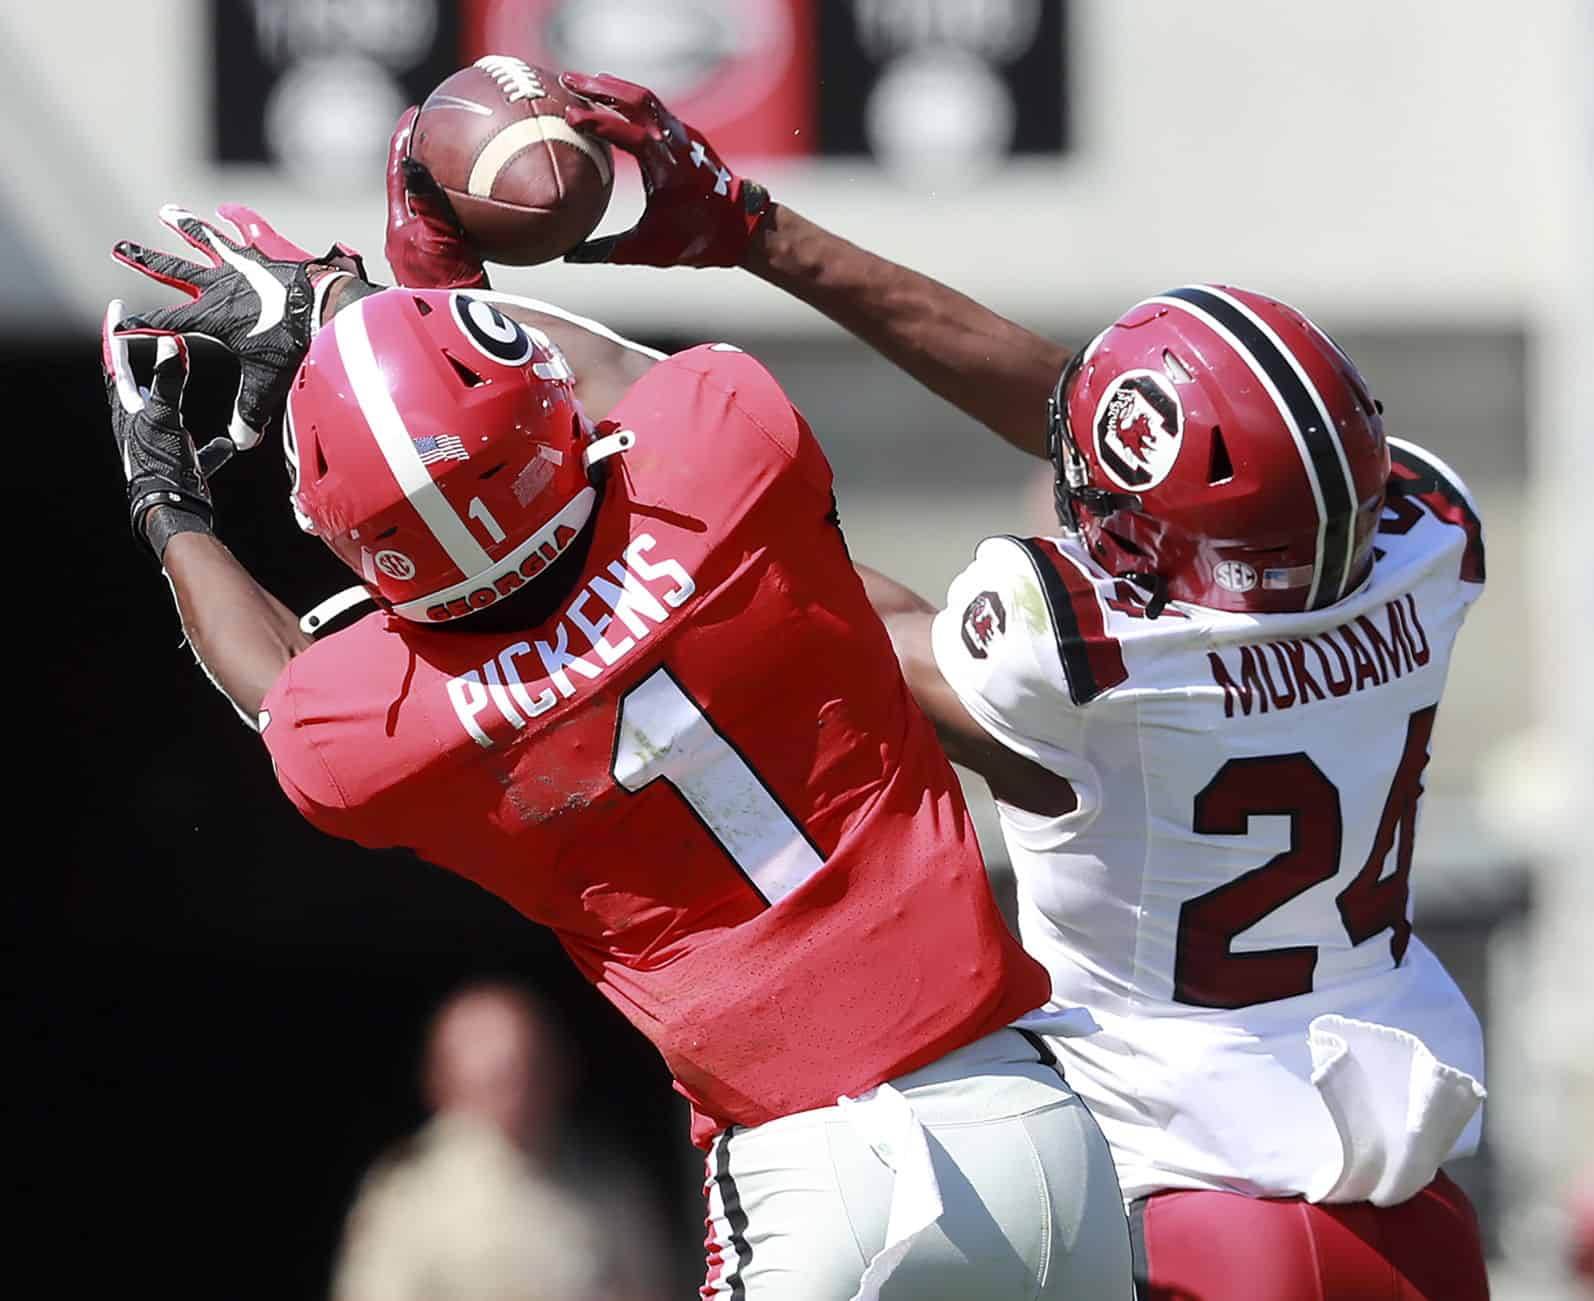 South Carolina cornerbacks NFL potential: Too much of a good thing